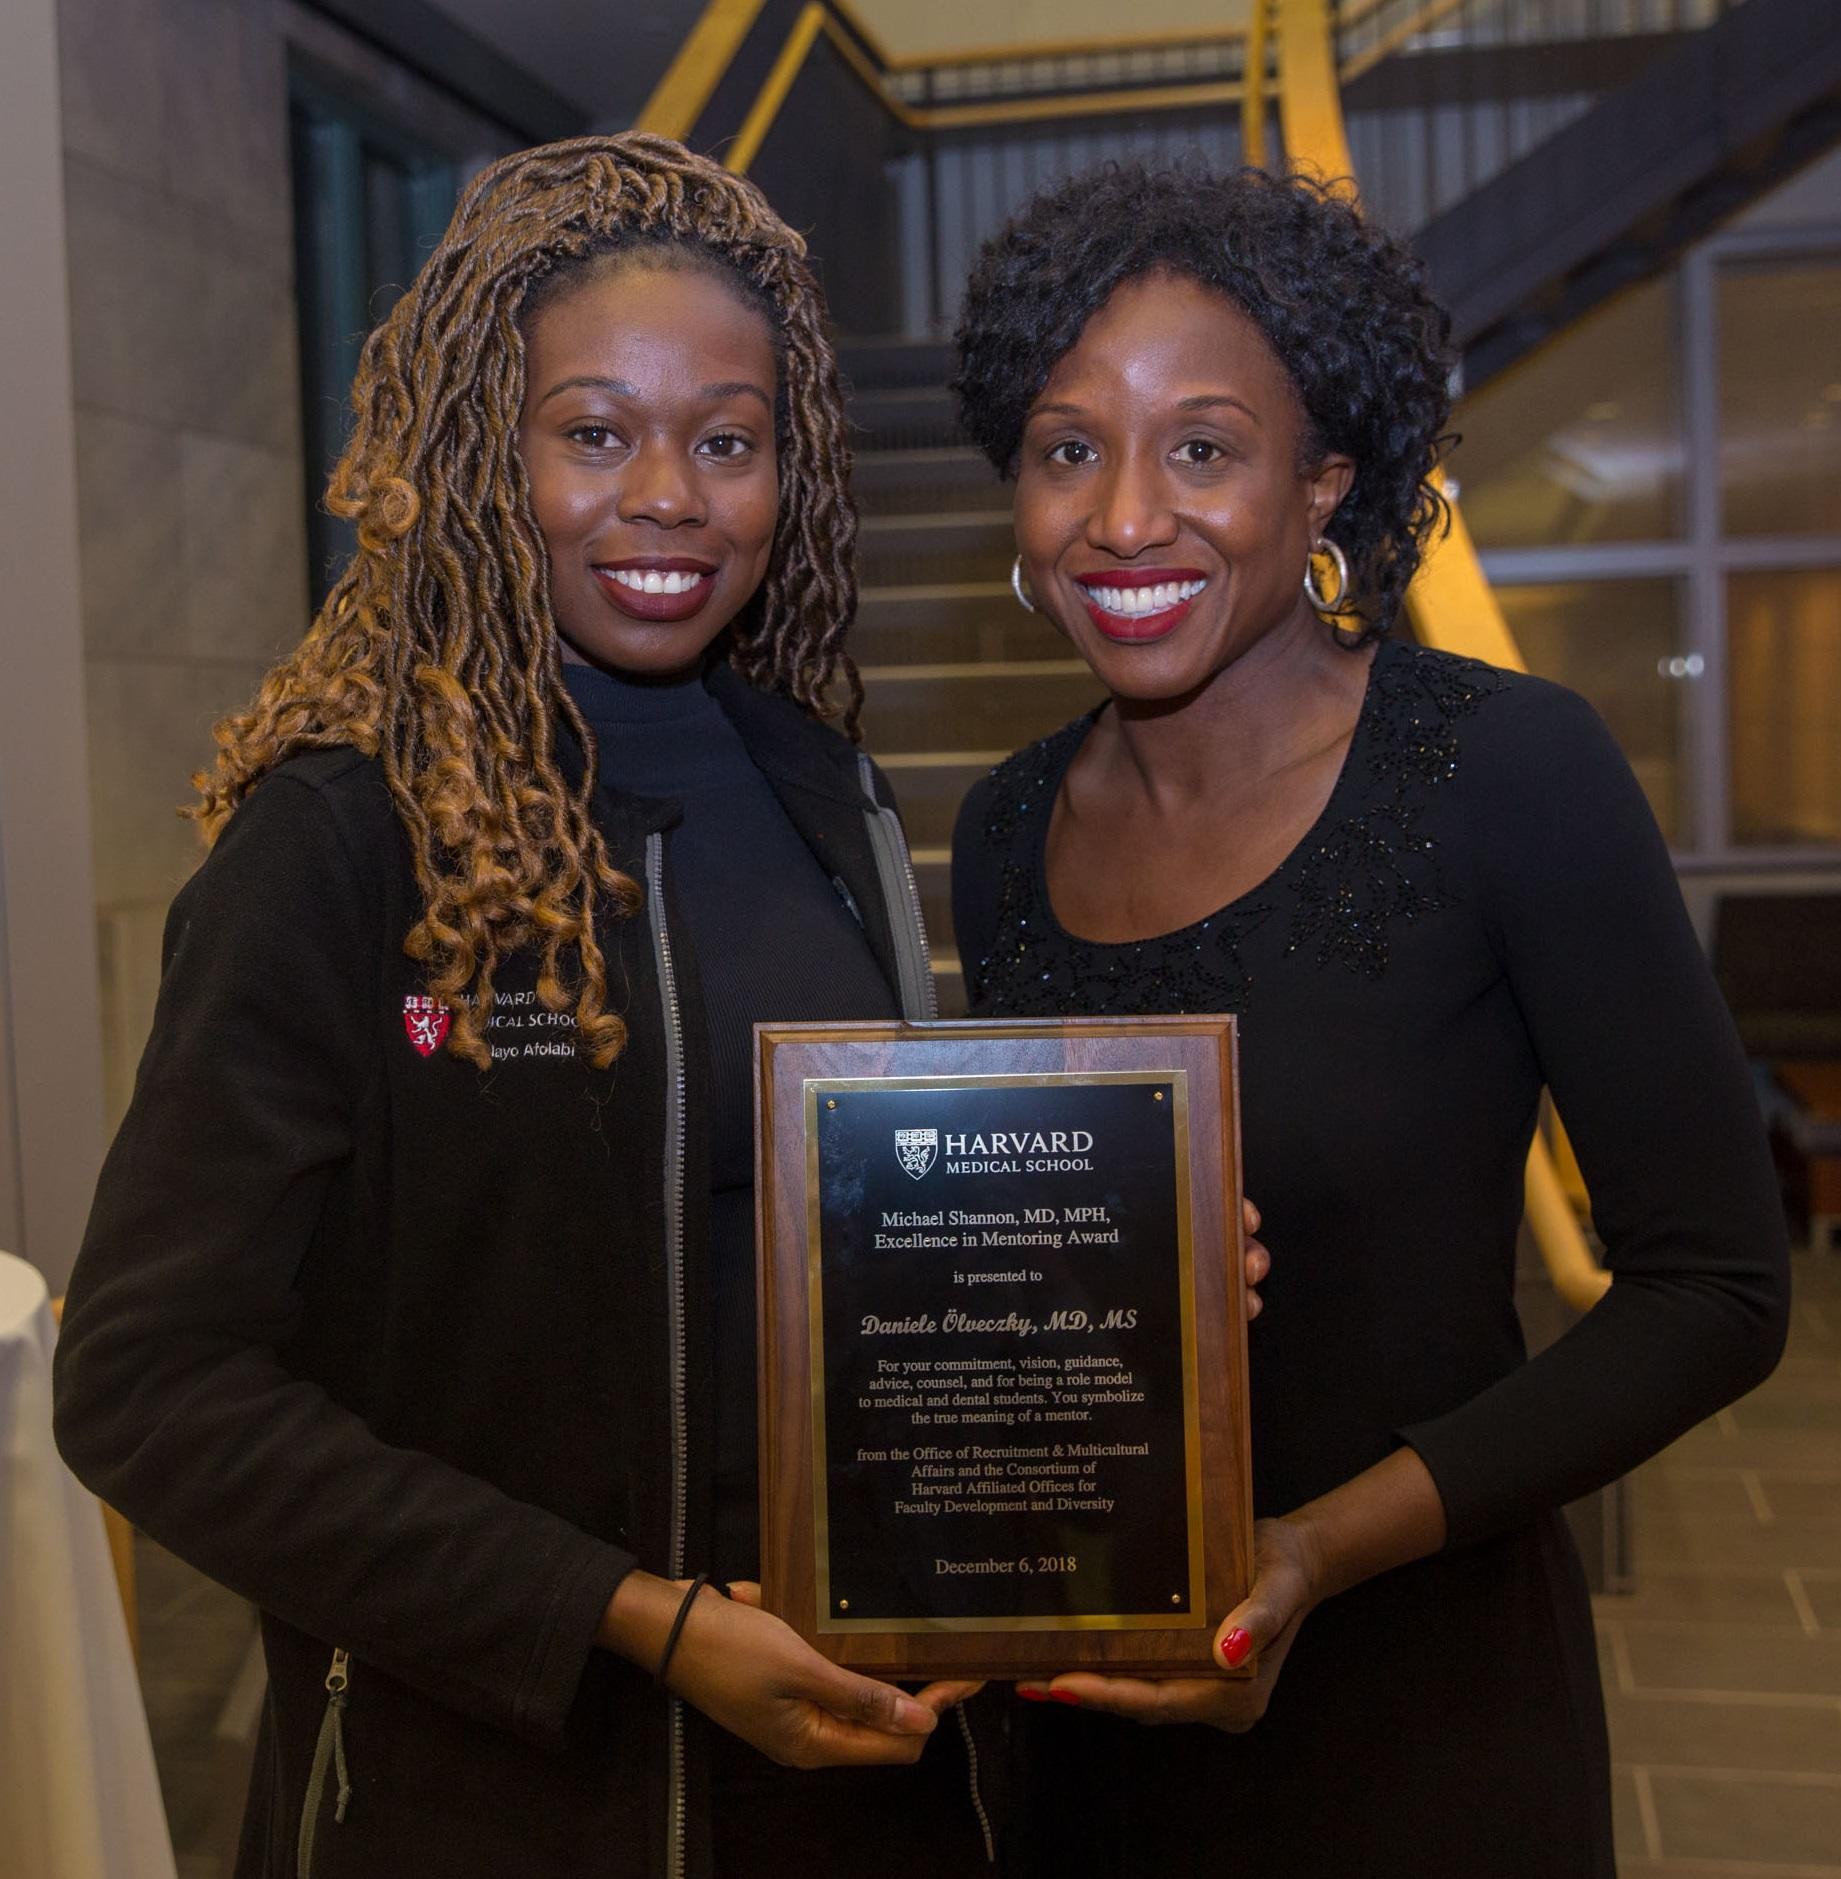 Titi Afolabi and Daniele Olveczky with award. Image: Bethany Versoy